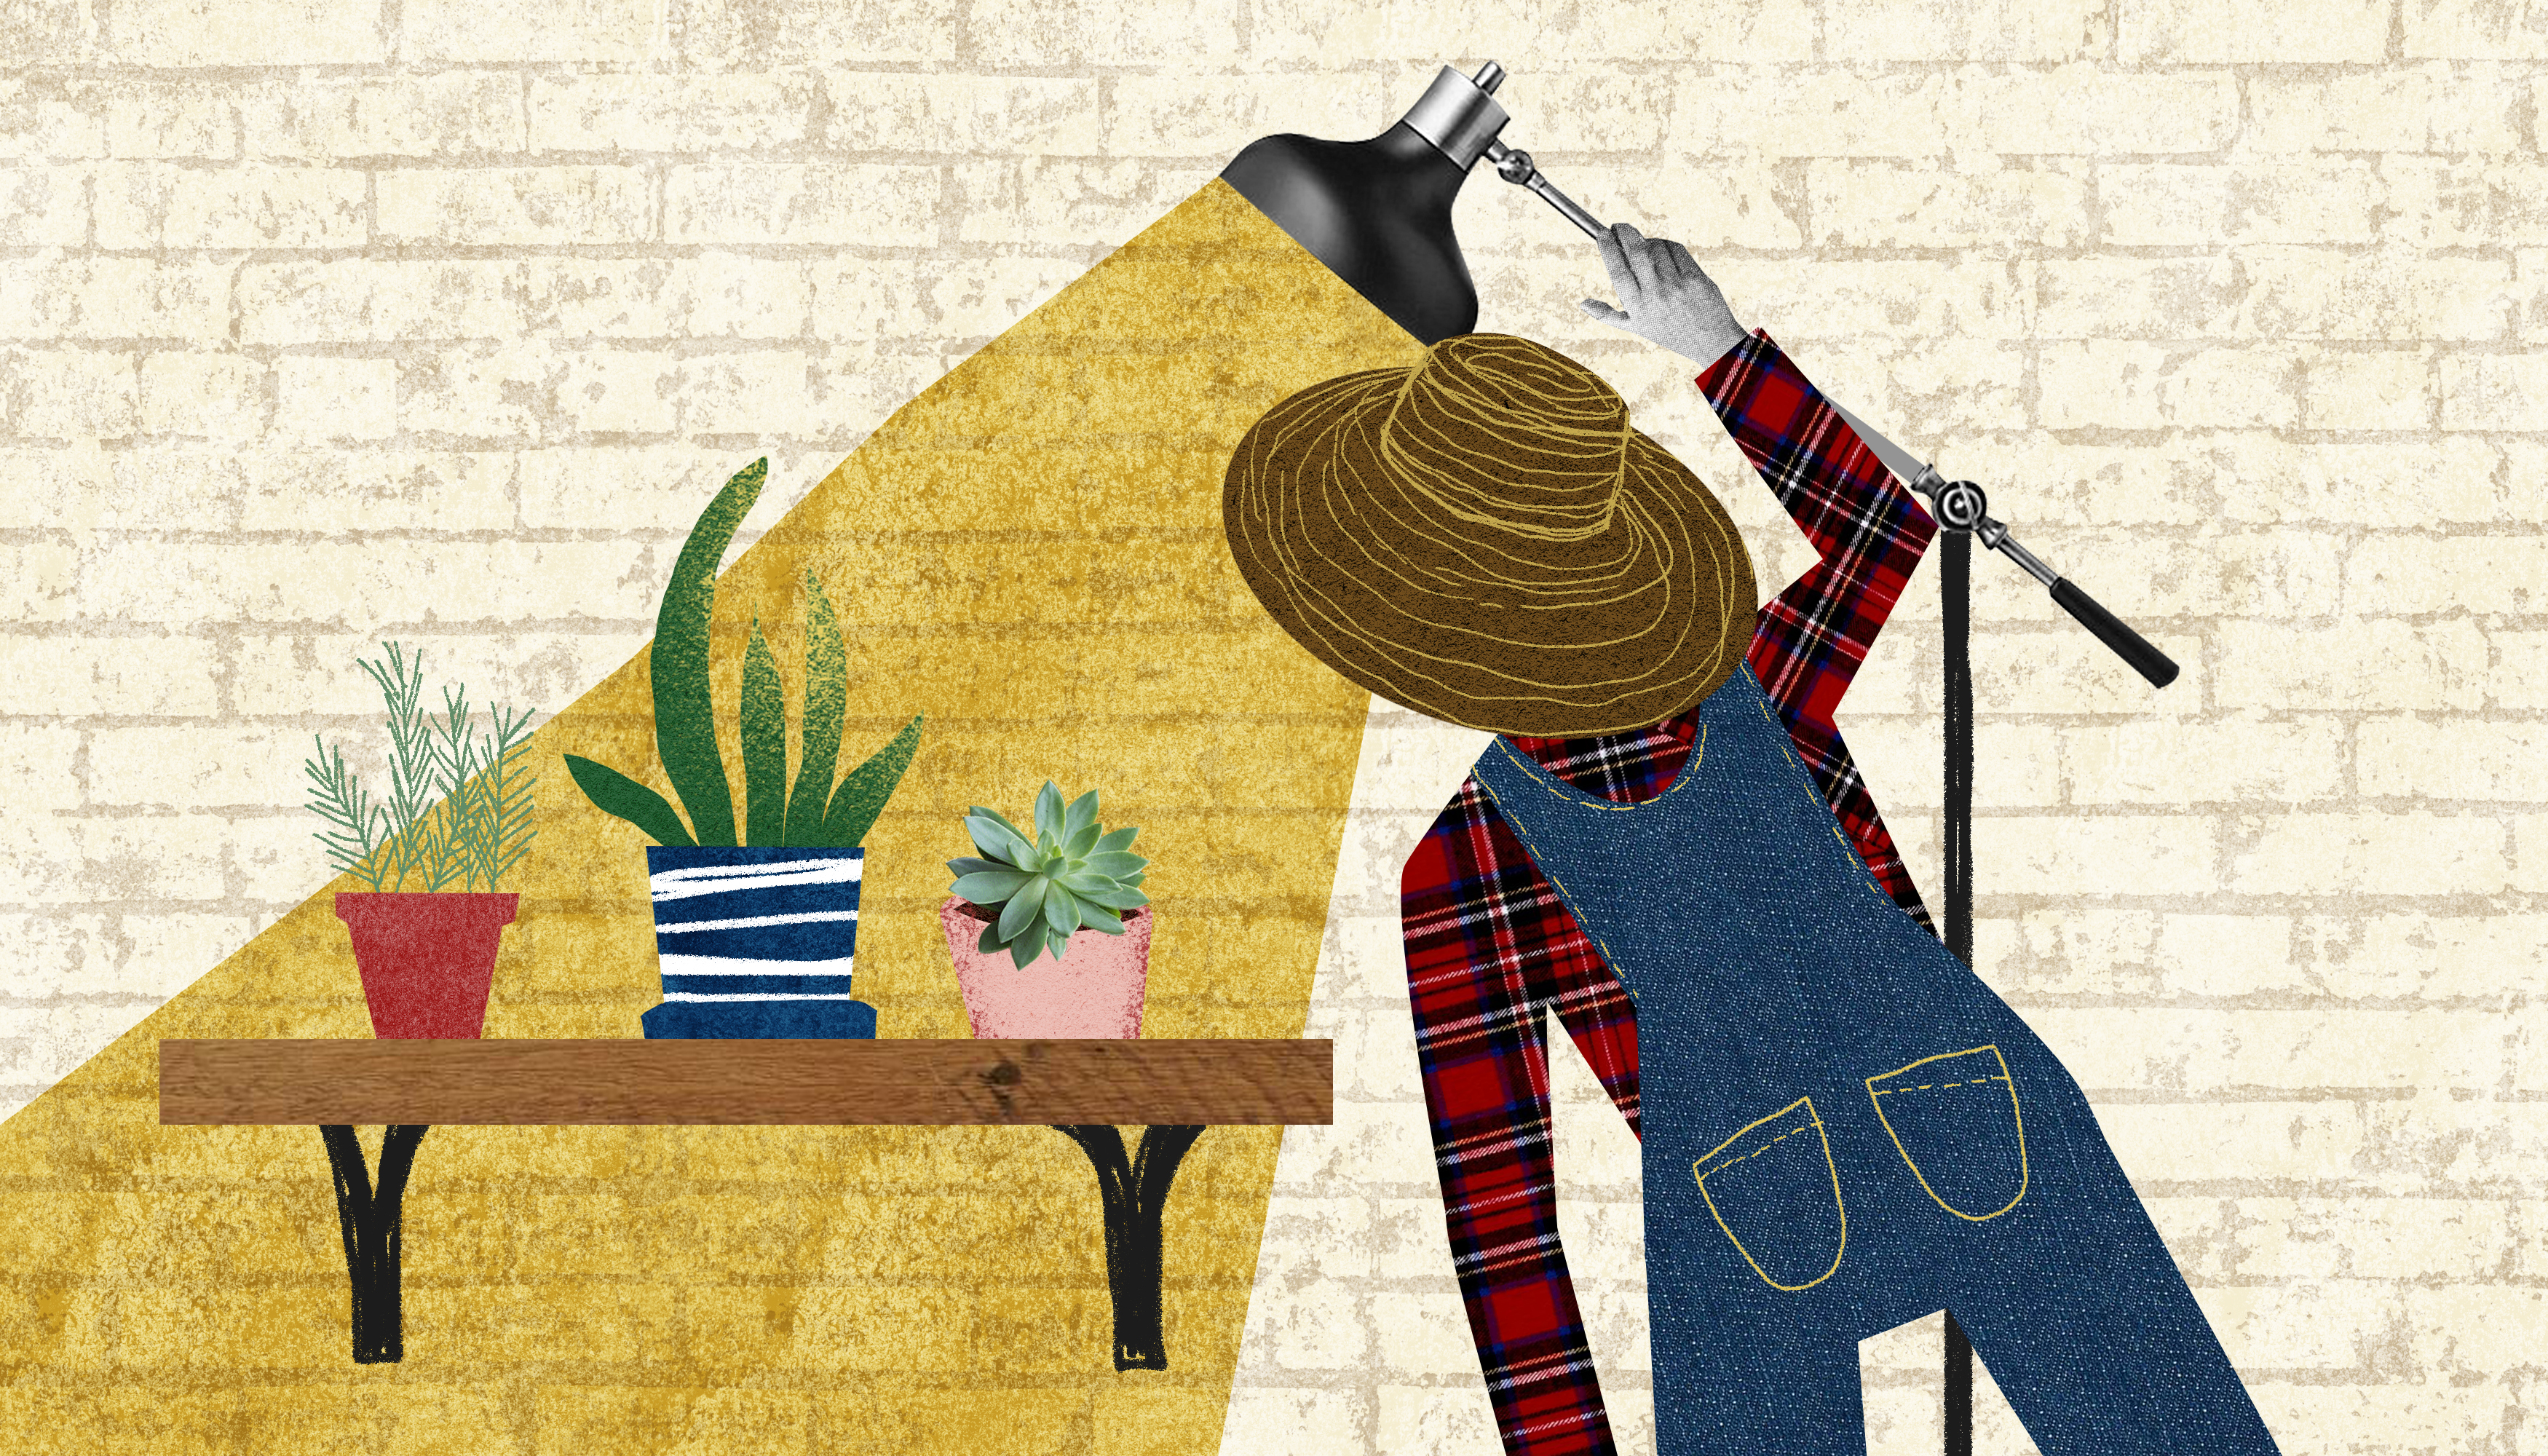 A person in overalls and a plaid shirt shines a line on a trio of small houseplants on a wooden shelf. Illustration.